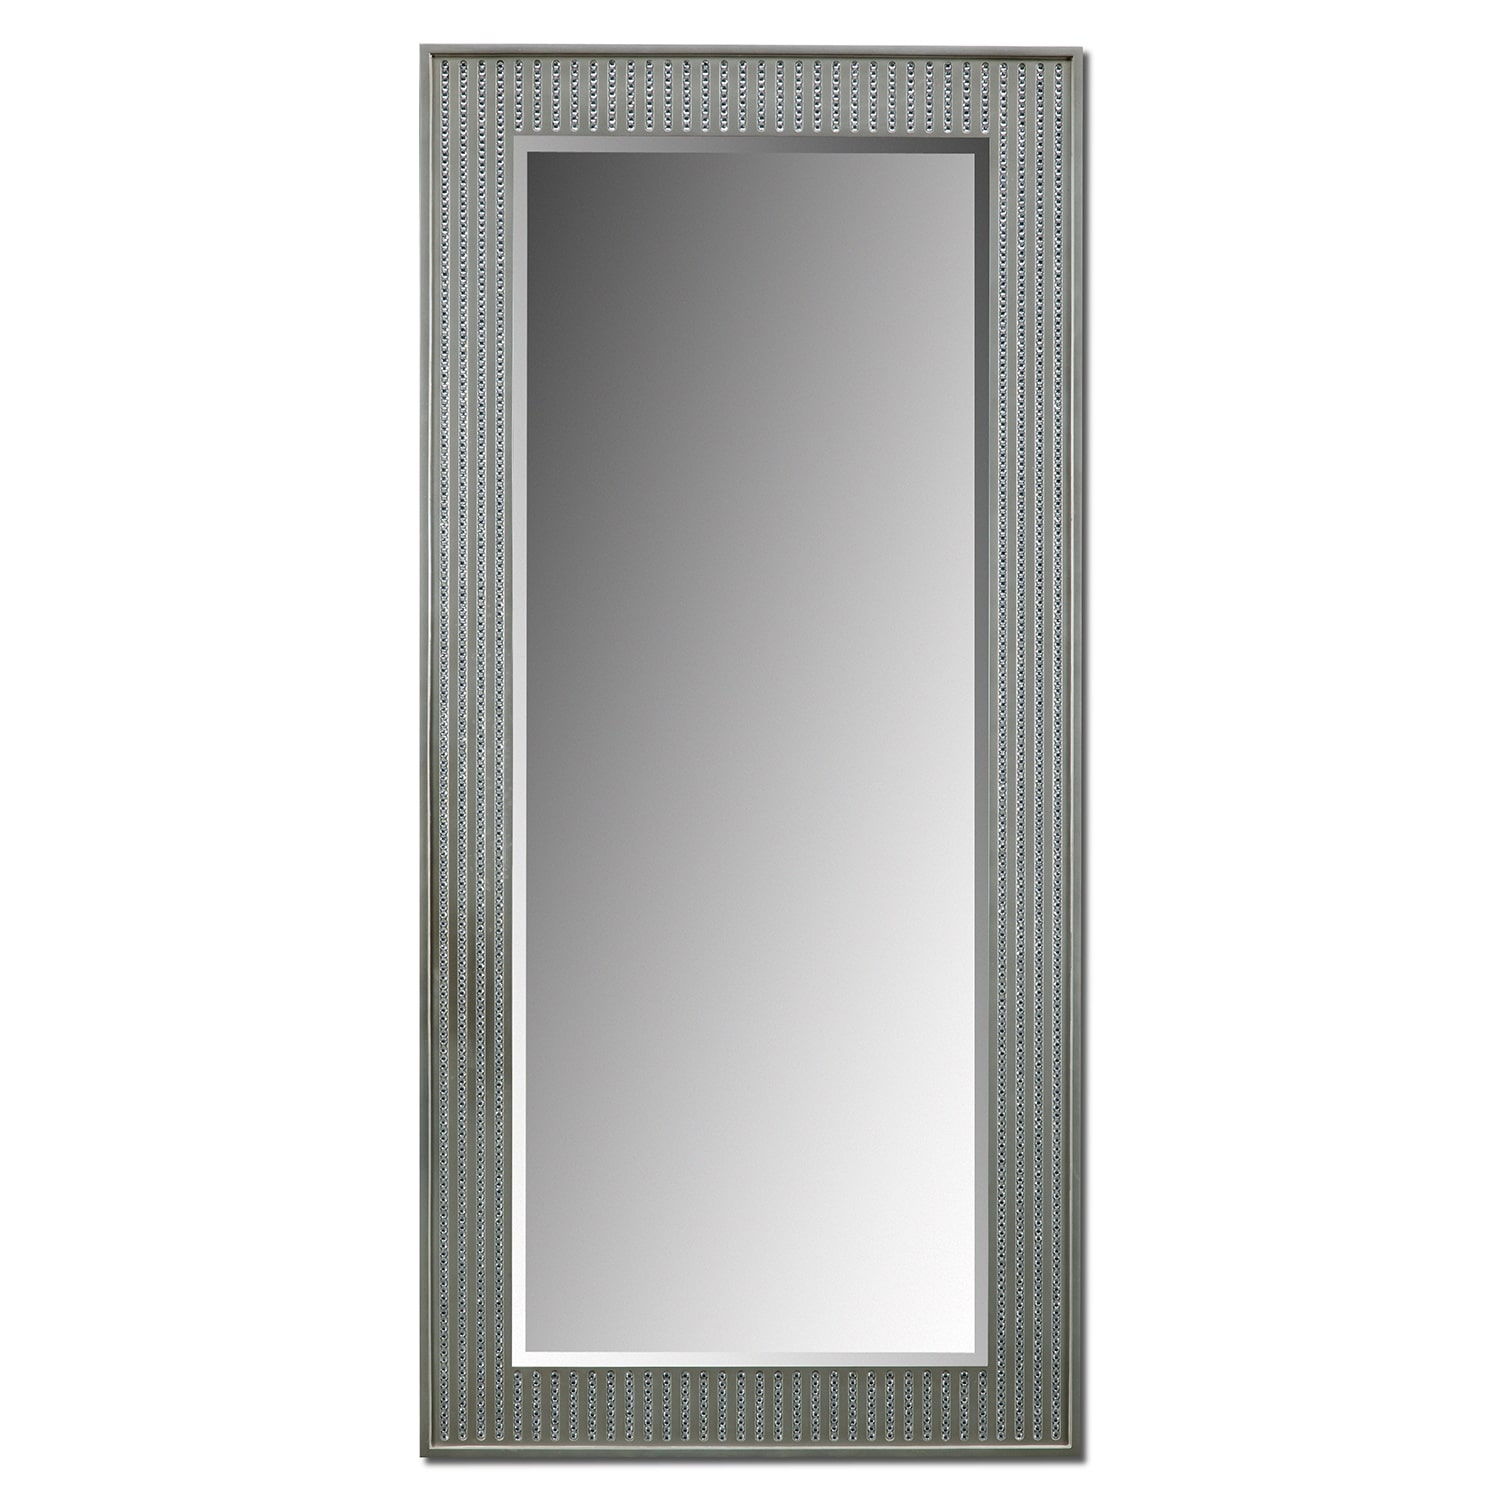 Bling Glam Floor Mirror  Silver  Value City Furniture